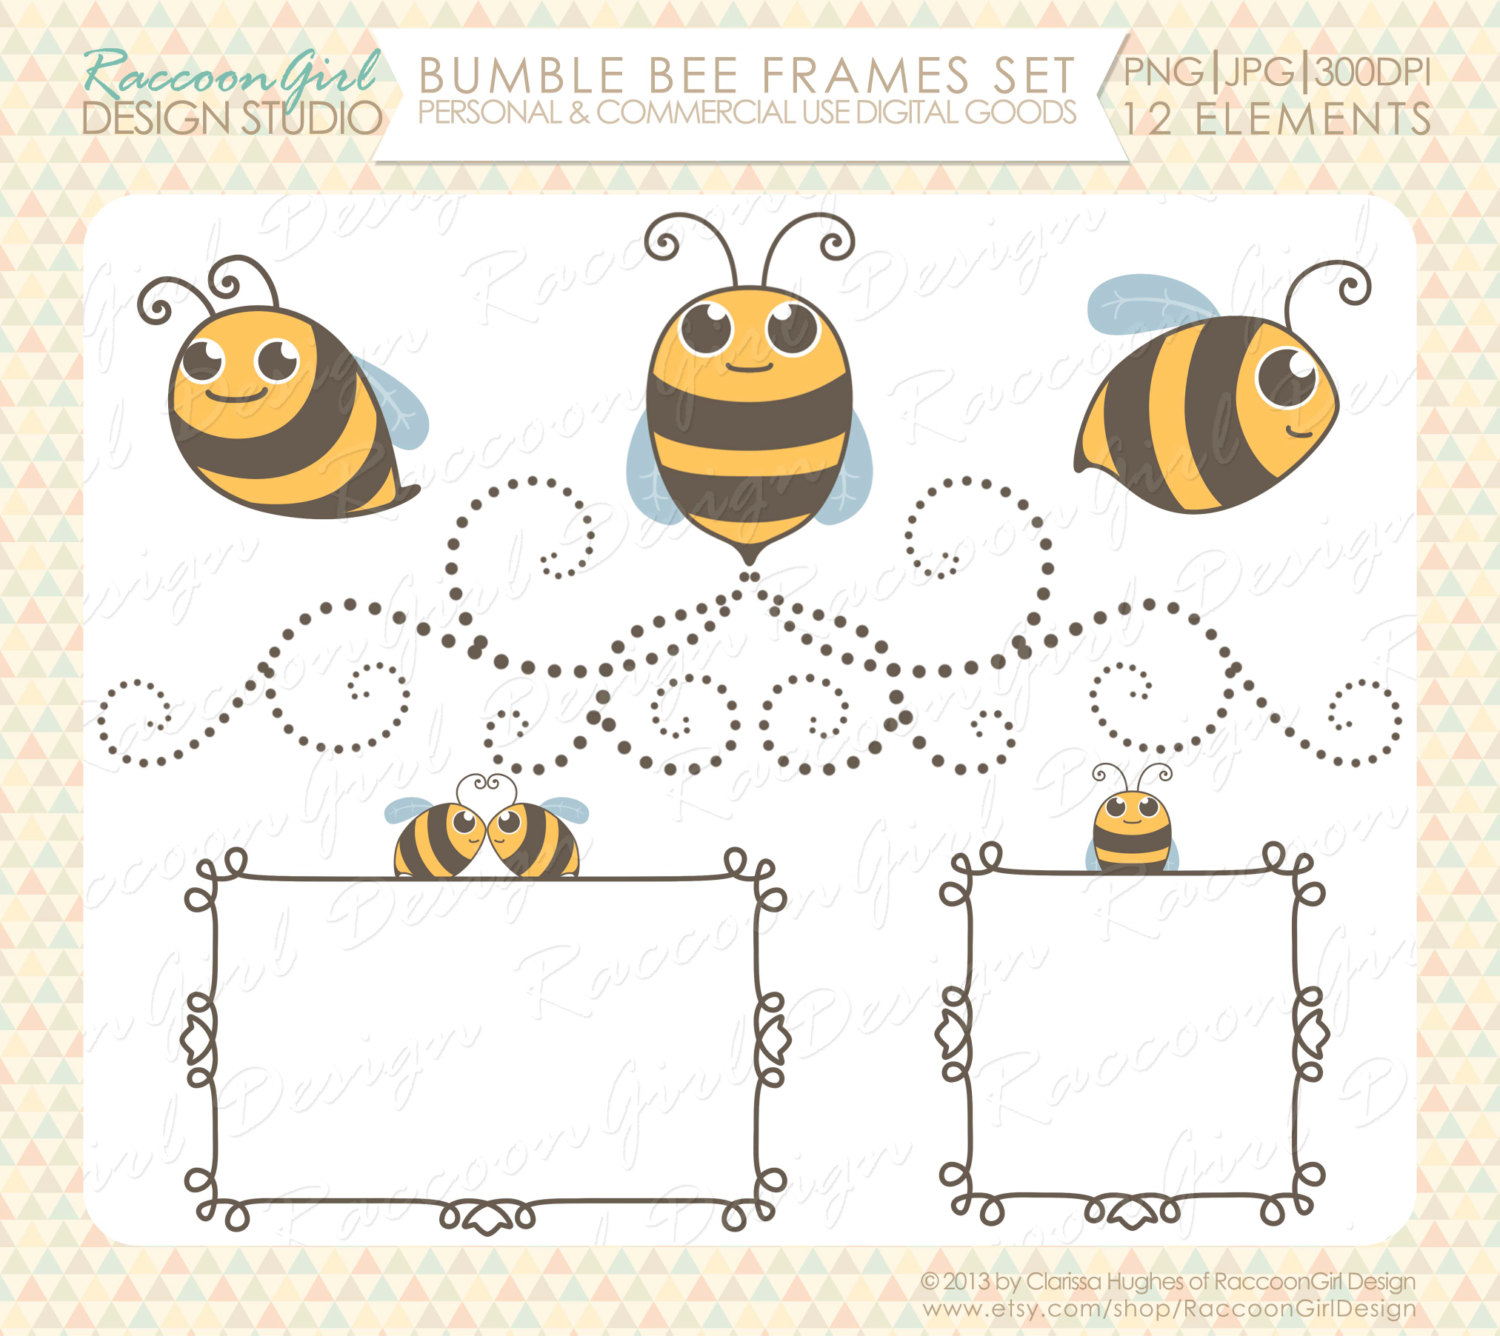 Bees clipart frame Digital item? Bumble Bee Frames